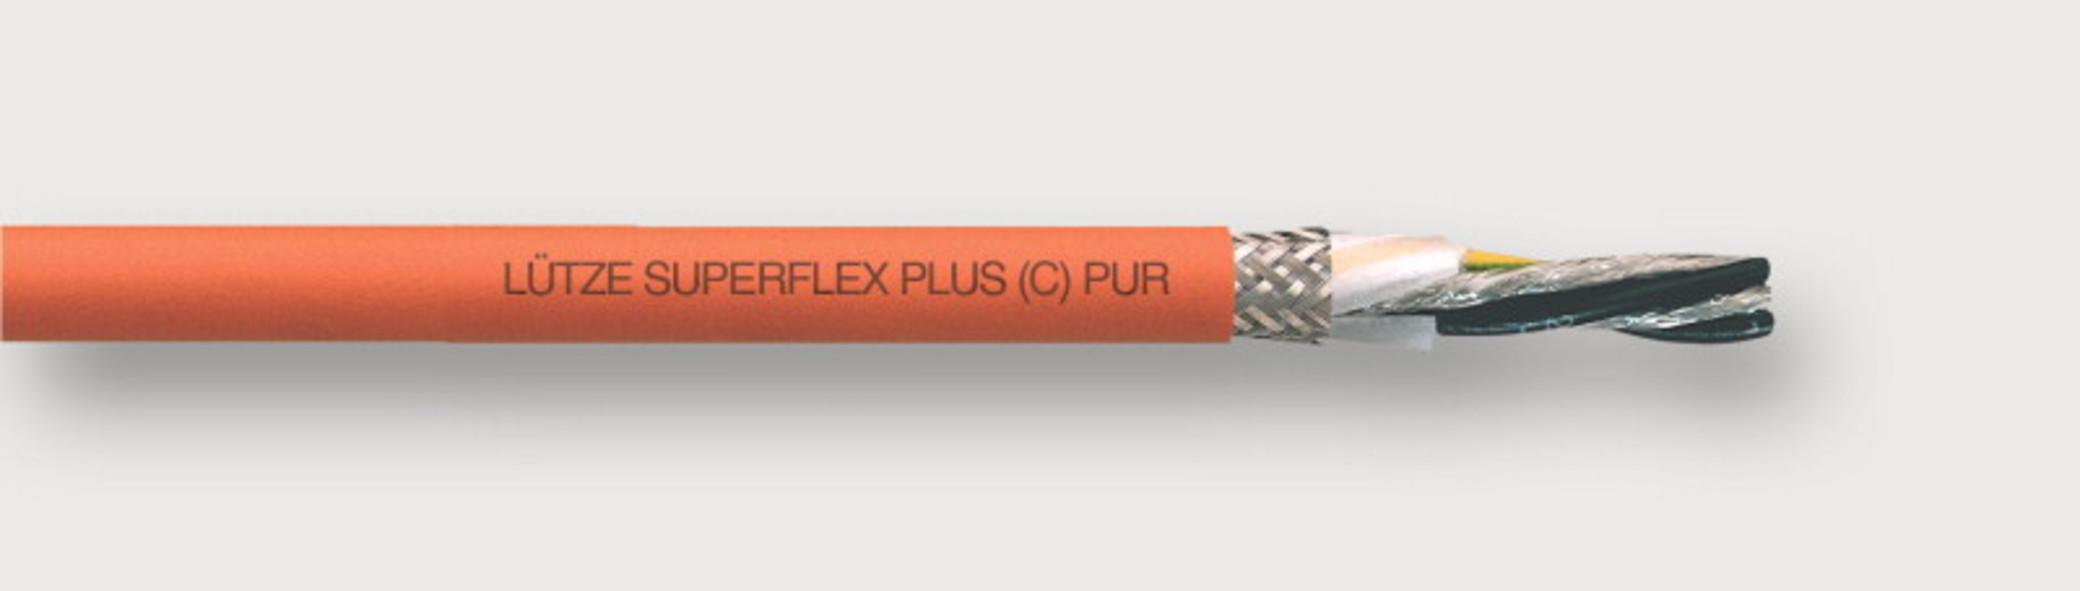 111423 - LÜTZE SUPERFLEX® PLUS M (C) PUR SERVO 0.6/1 kV High Flexing Motor Cable for Siemens and other systems For highest requirements